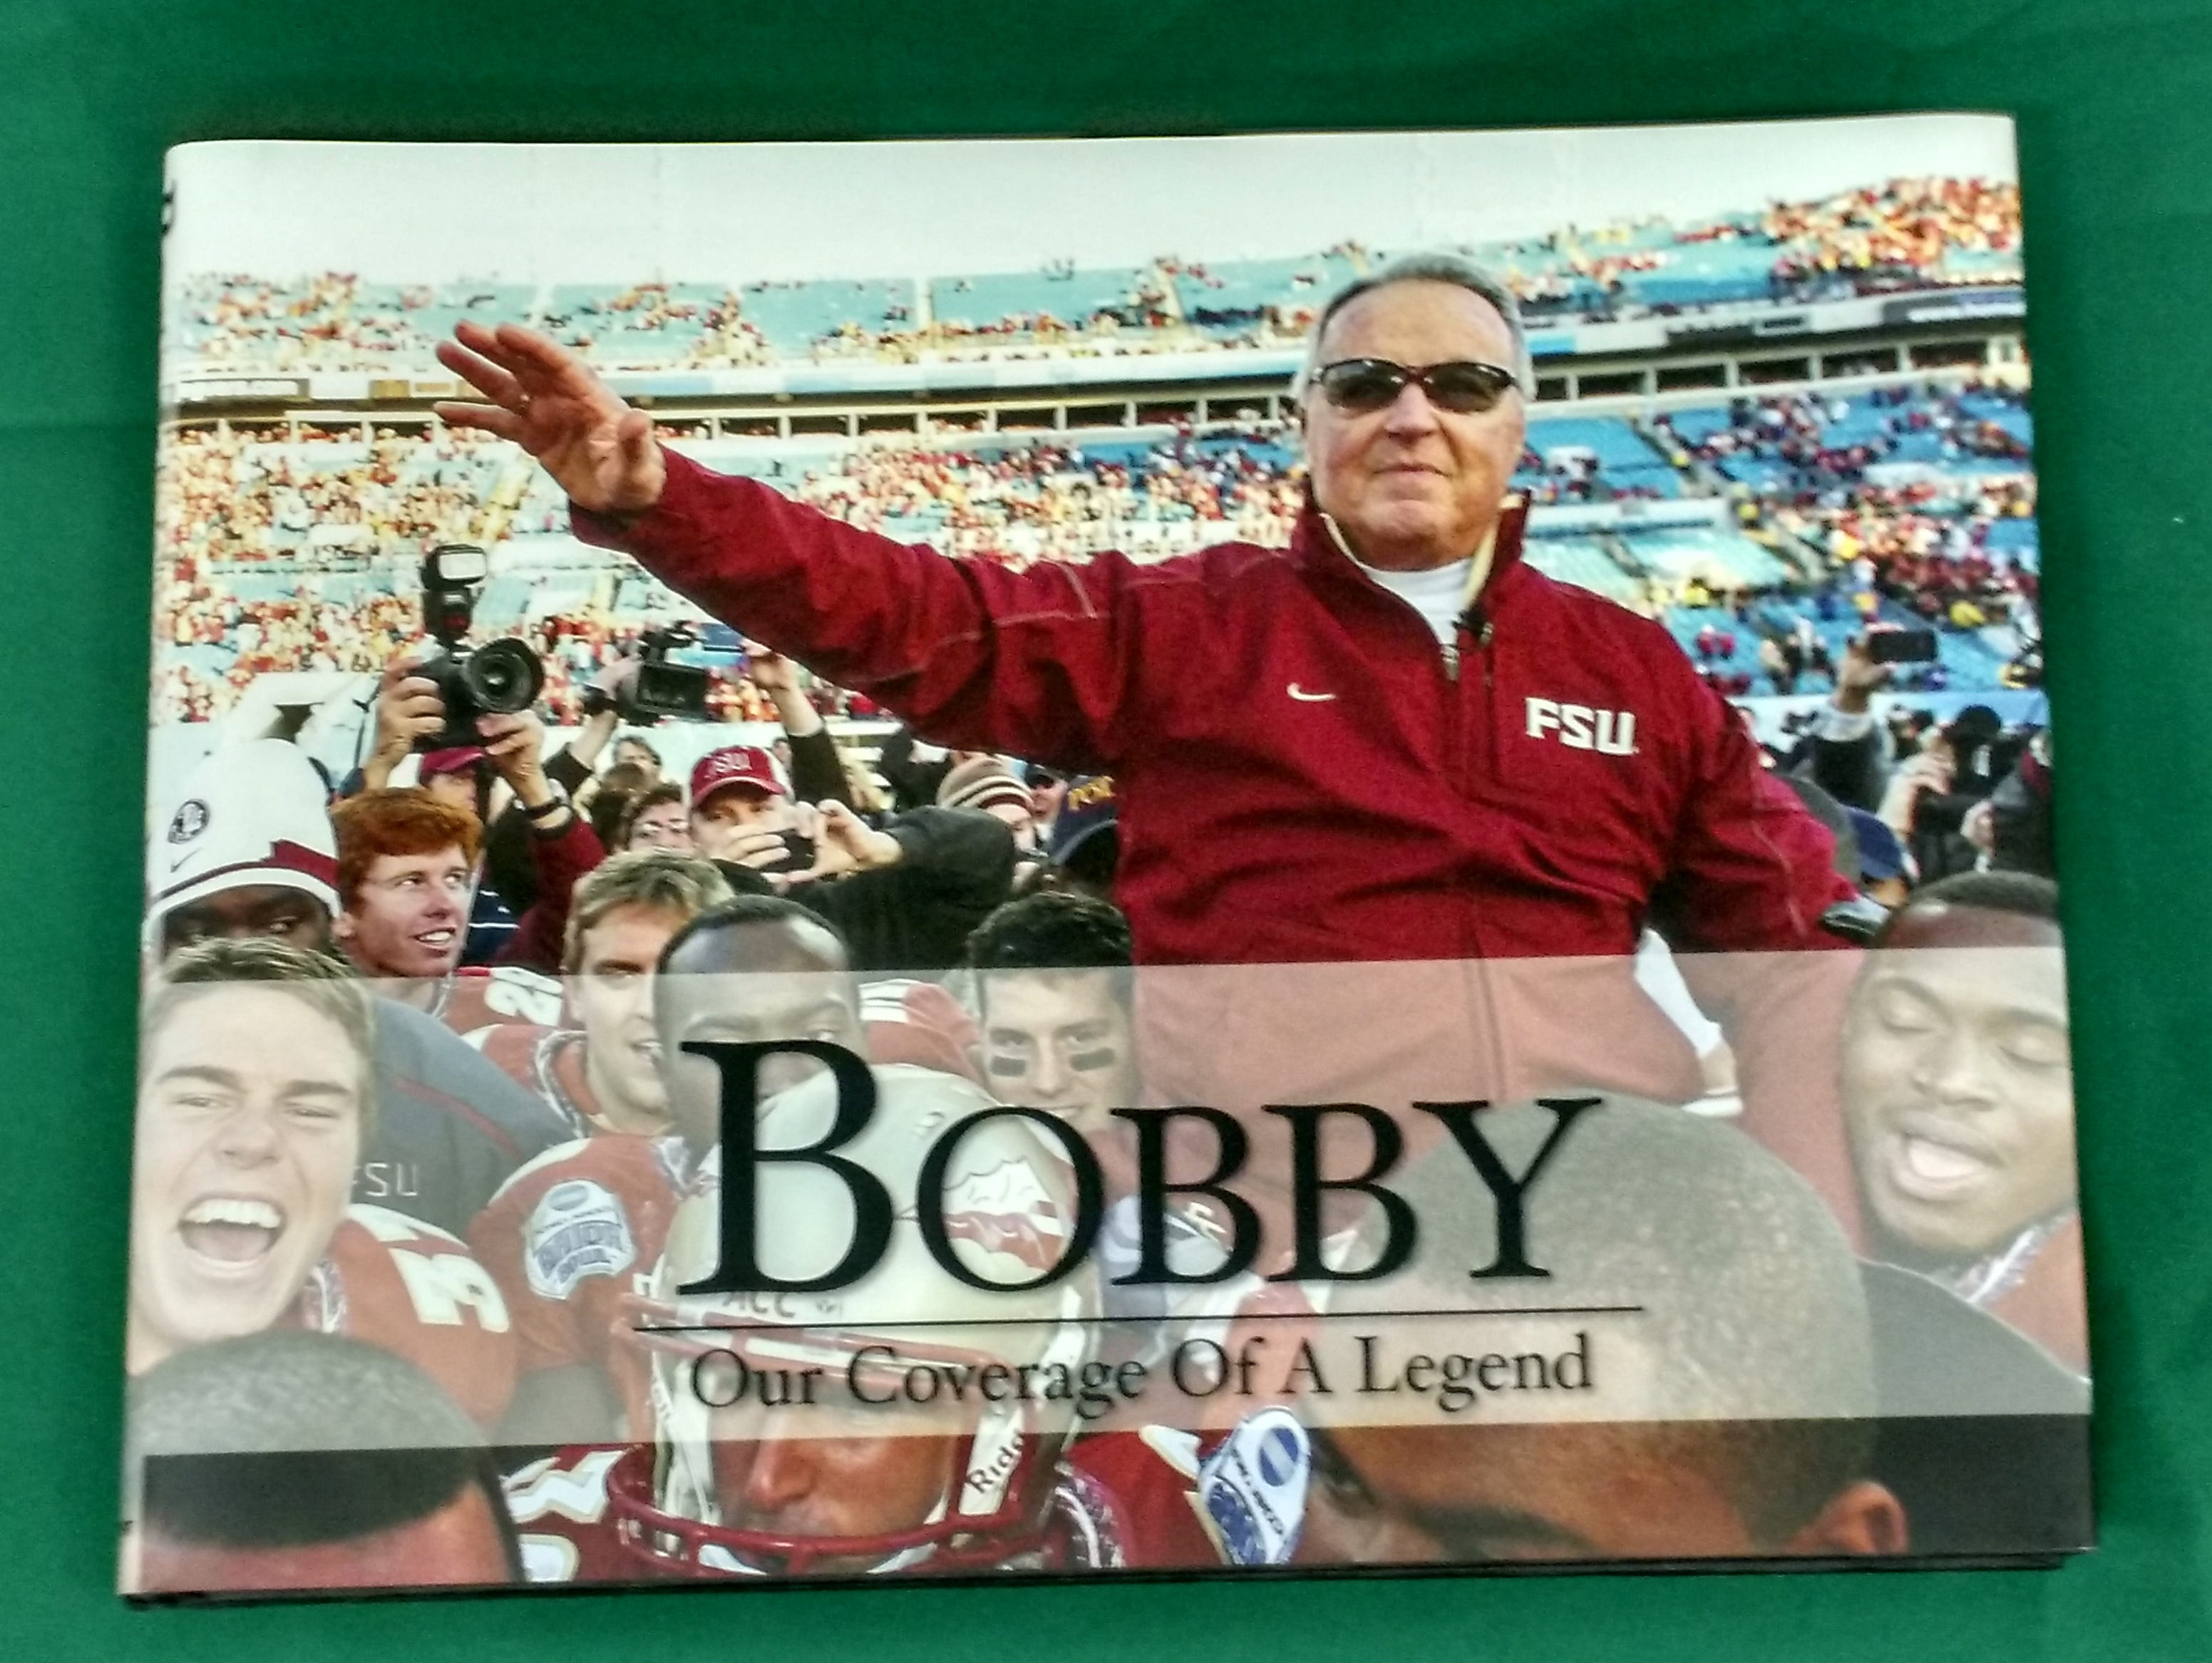 Get 75 percent off a book chronicling the 34-year career of FSU legend Coach Bobby Bowden!